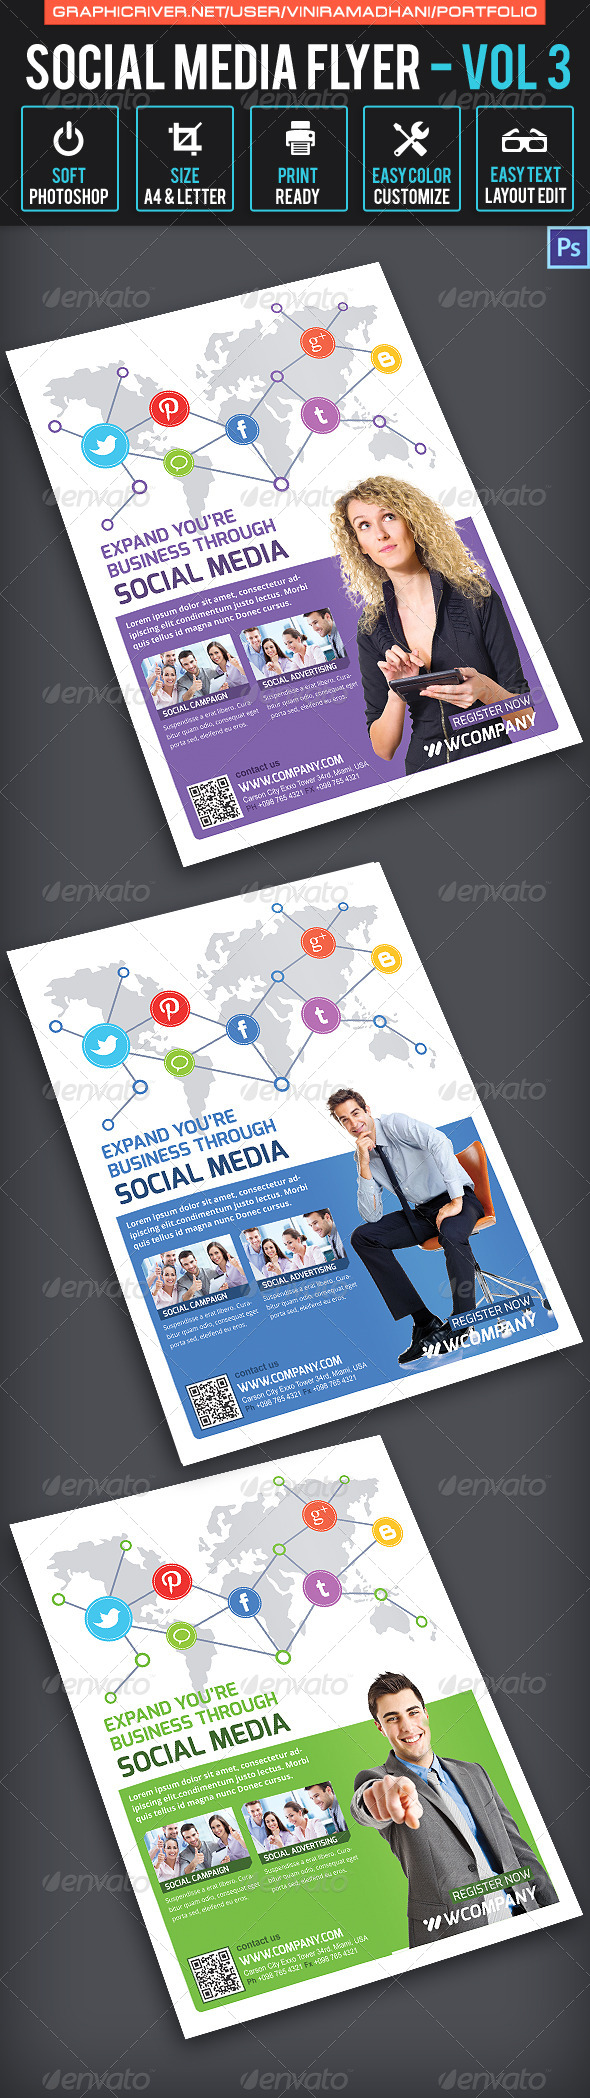 Social Media Flyer | Volume 3 - Corporate Flyers